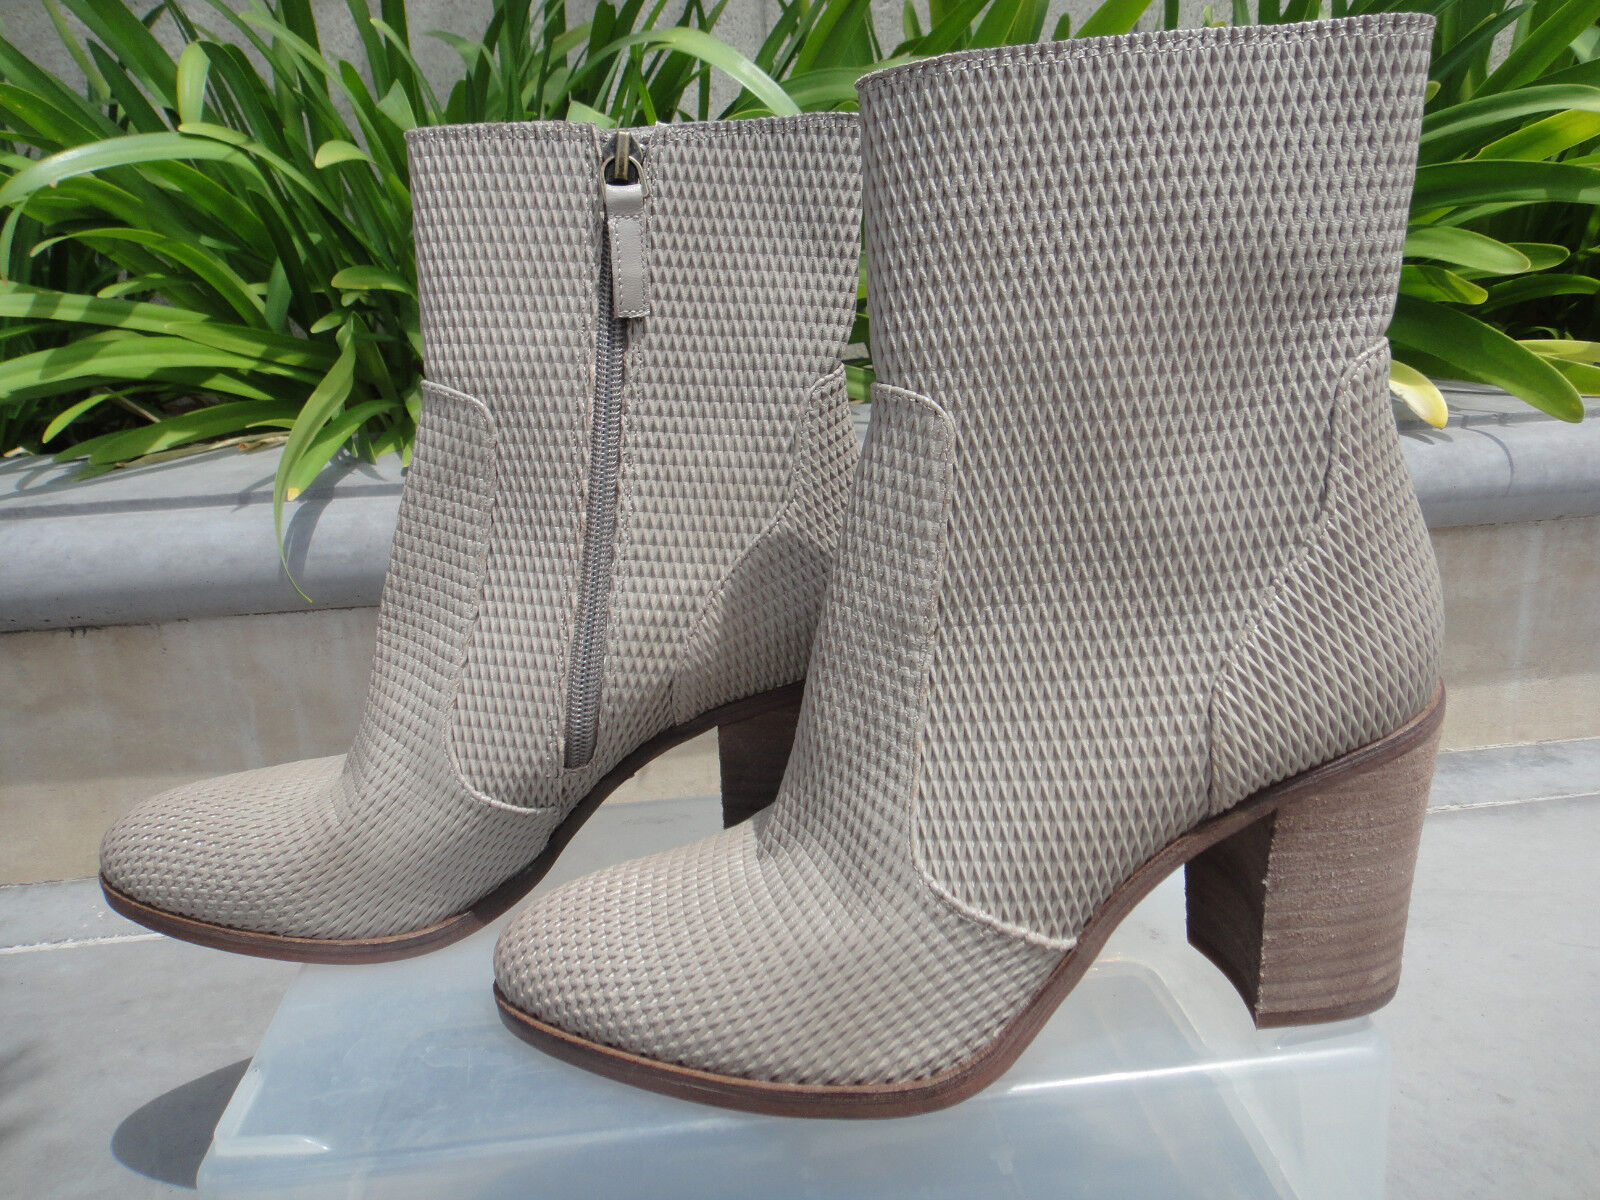 Hinge DAPHNE Bootie Perforated Leather w/Almond Toe, Wmns' Size US 8M, MSRP129